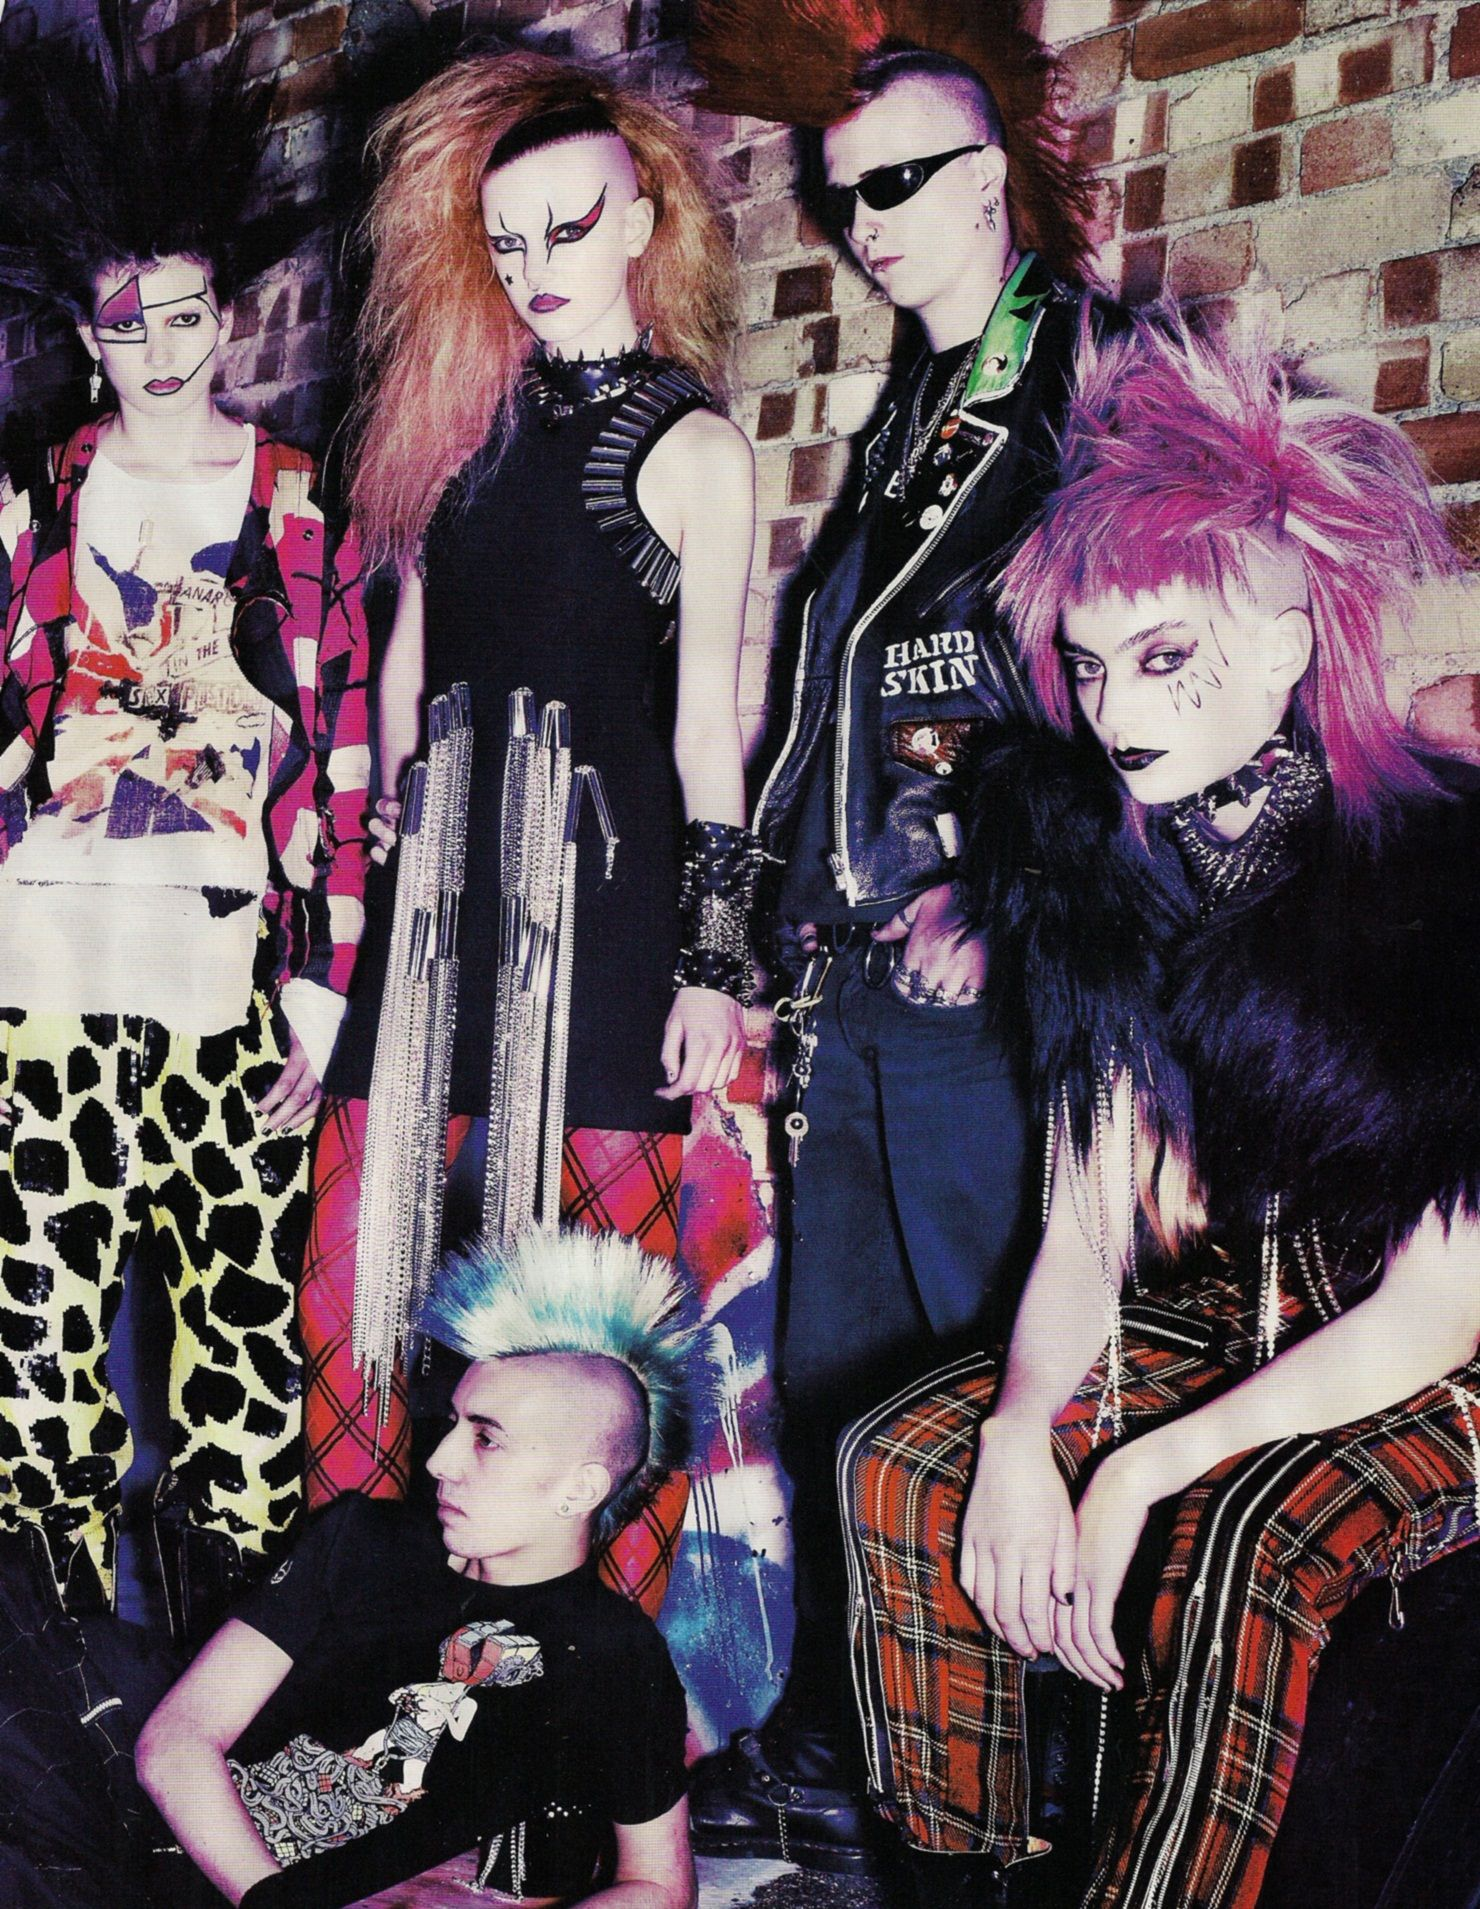 More Staples Of Punk Fashion Bright Garish Coloured Hair Spikes Chains Pattern Trousers Leggings Skirt Tartan Was And Still Is Particular Popular